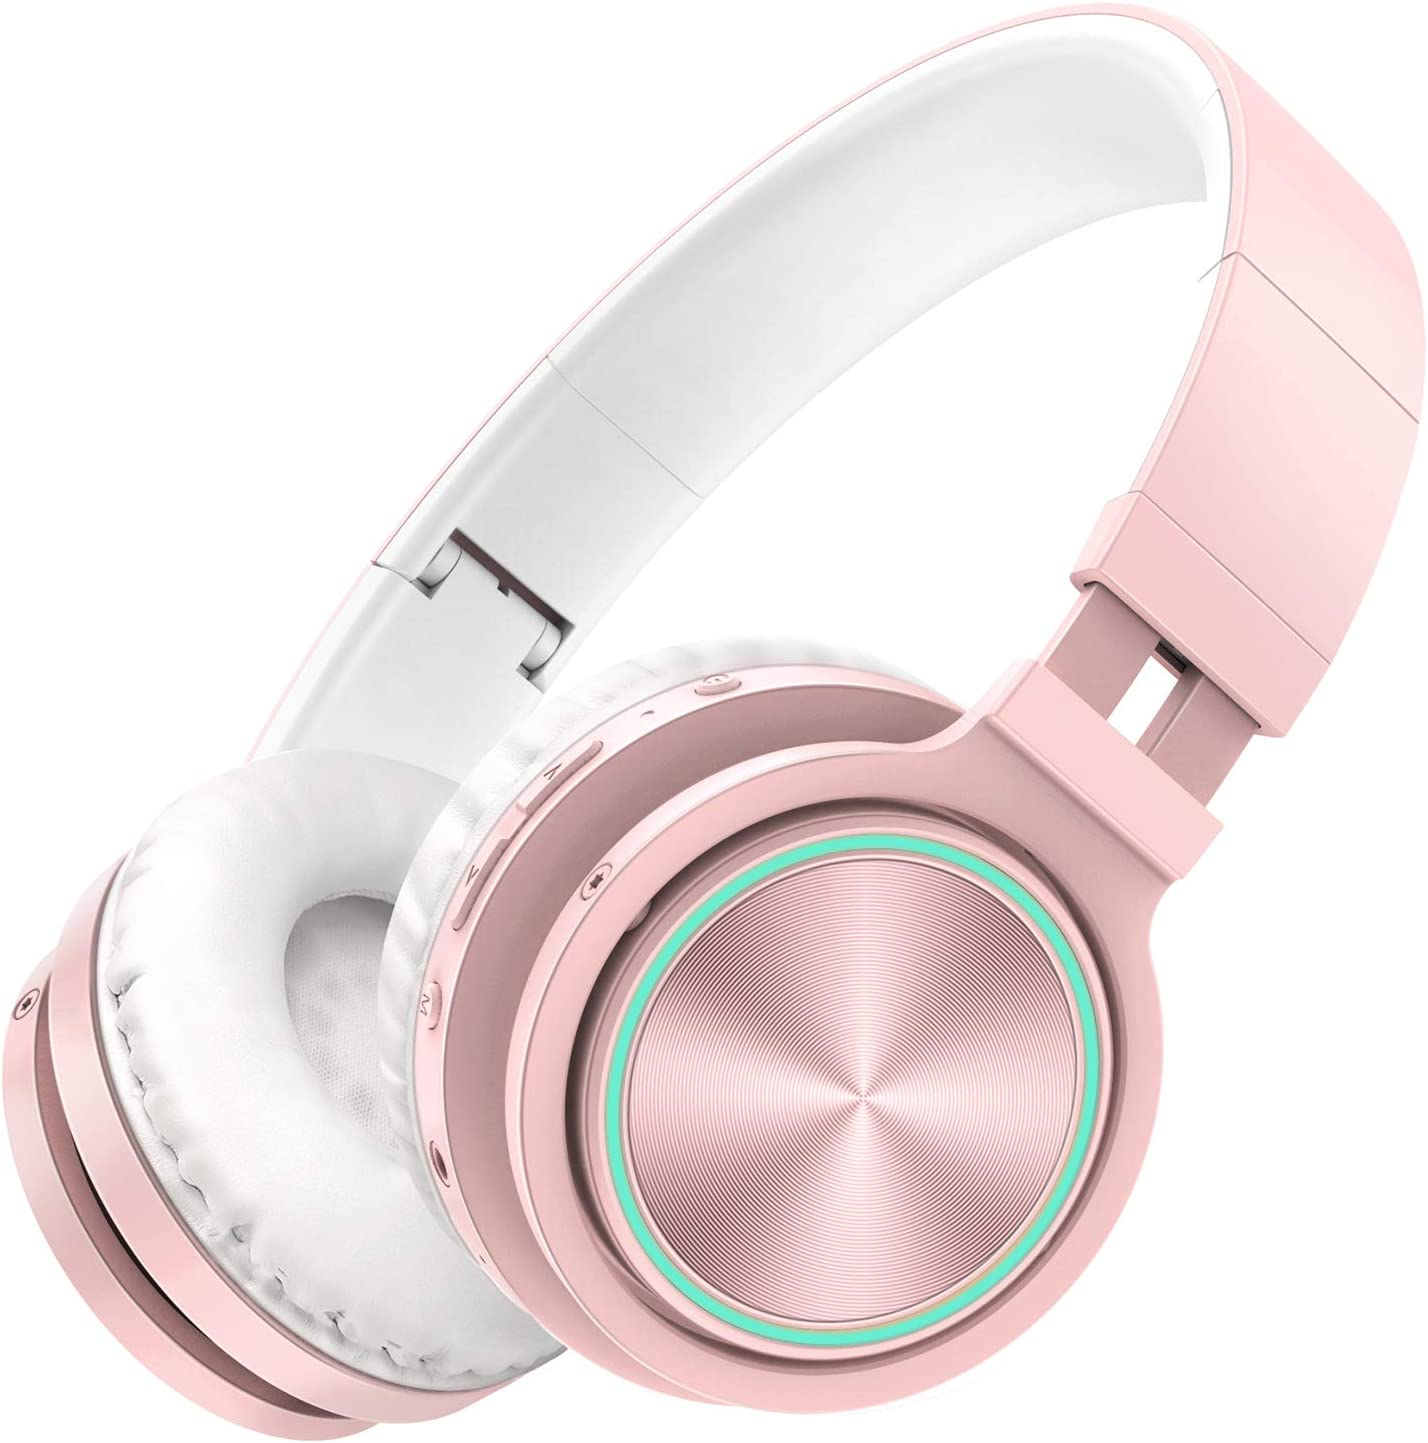 Picun Wireless Headphones 25 Hours Playtime Romantic LED Bluetooth Headphones, HiFi Stereo Headphones with HD Mic, Foldable, Soft Snug Protein Earpads, TF Wired Mode for Women Girls Kids Rose Gold